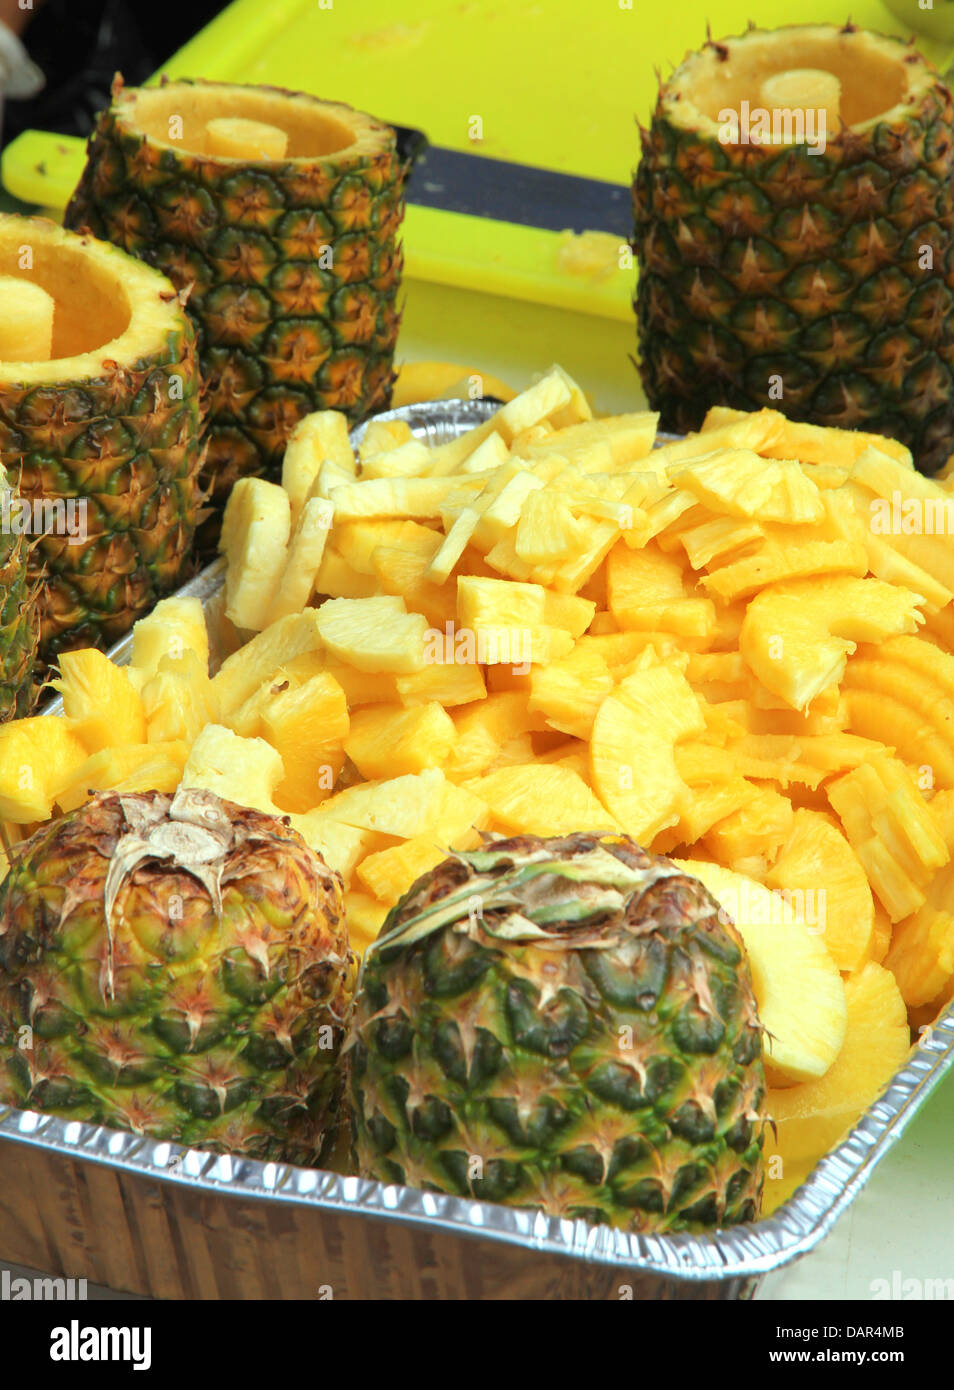 Sliced and carved pineapple at a food stand in toronto canada